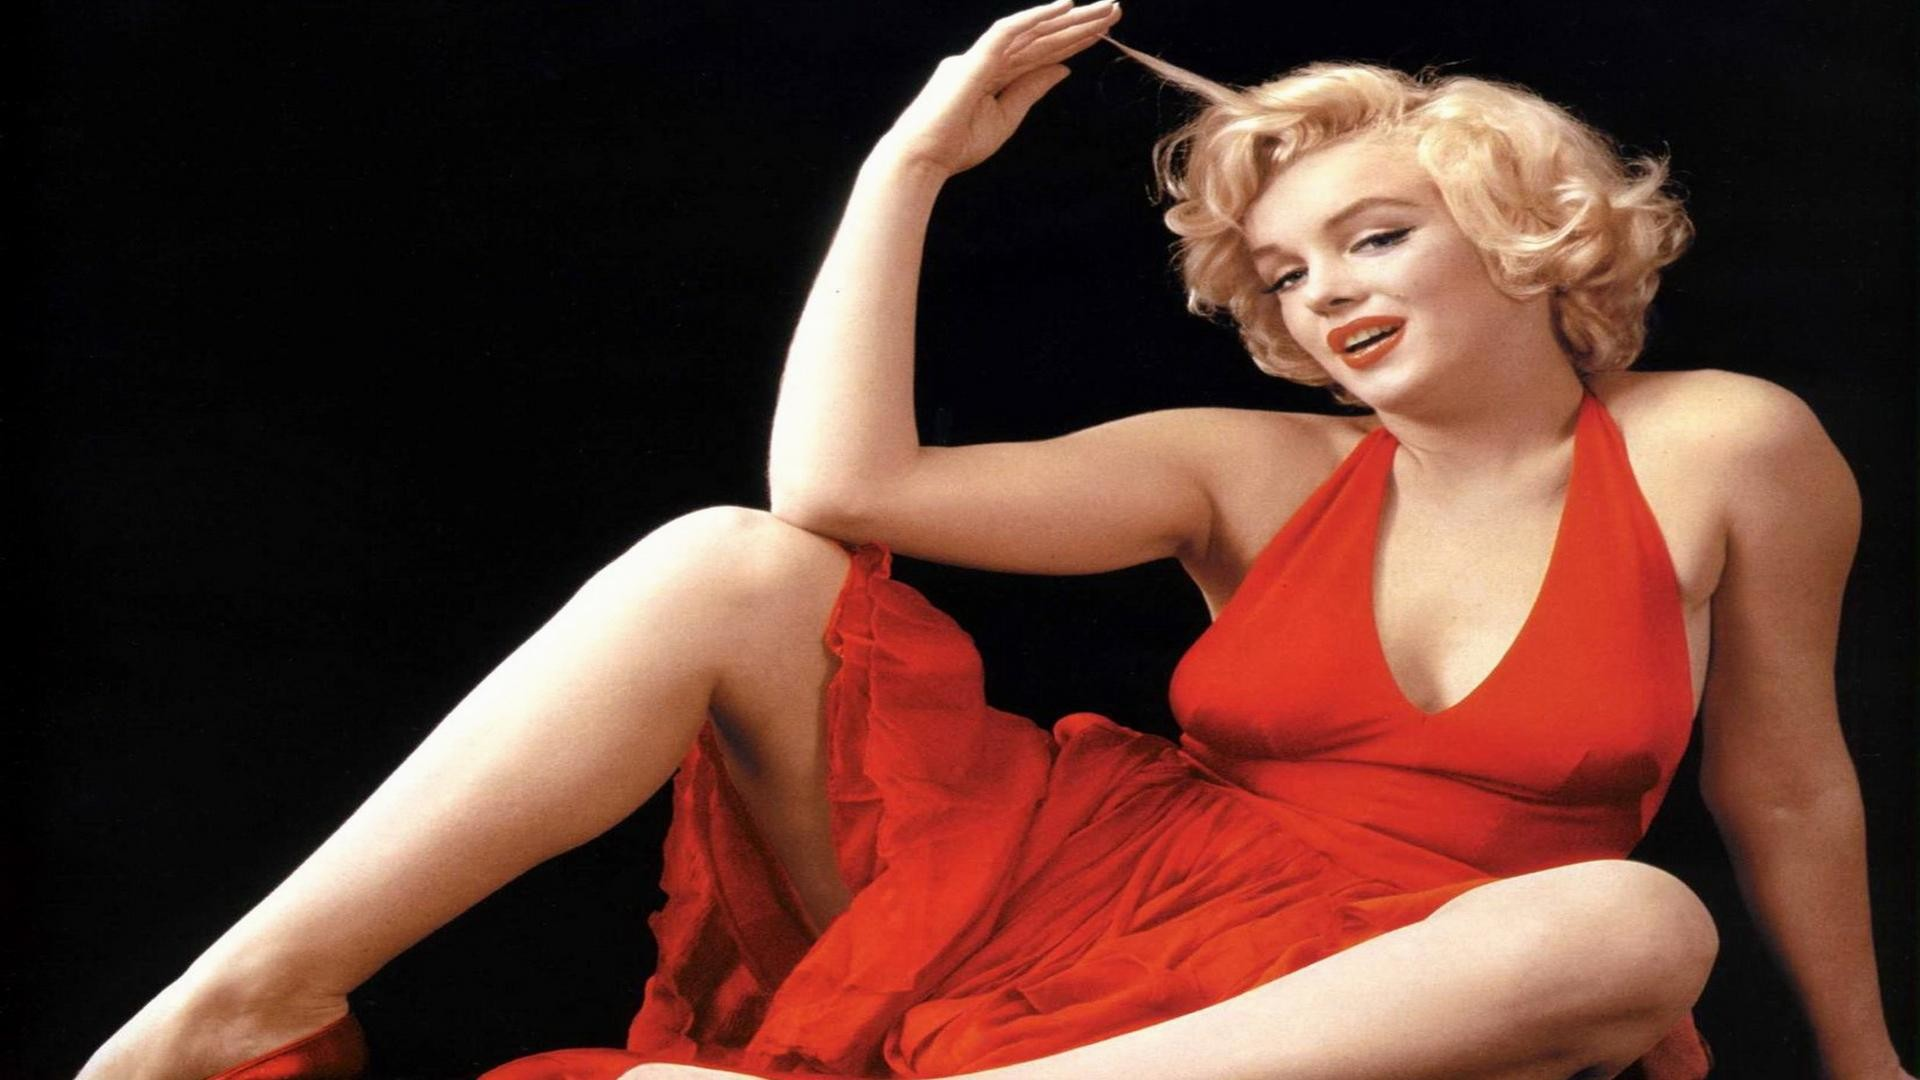 Cute Girl Face Desktop Wallpaper Marilyn Monroe Wallpaper 63 Images